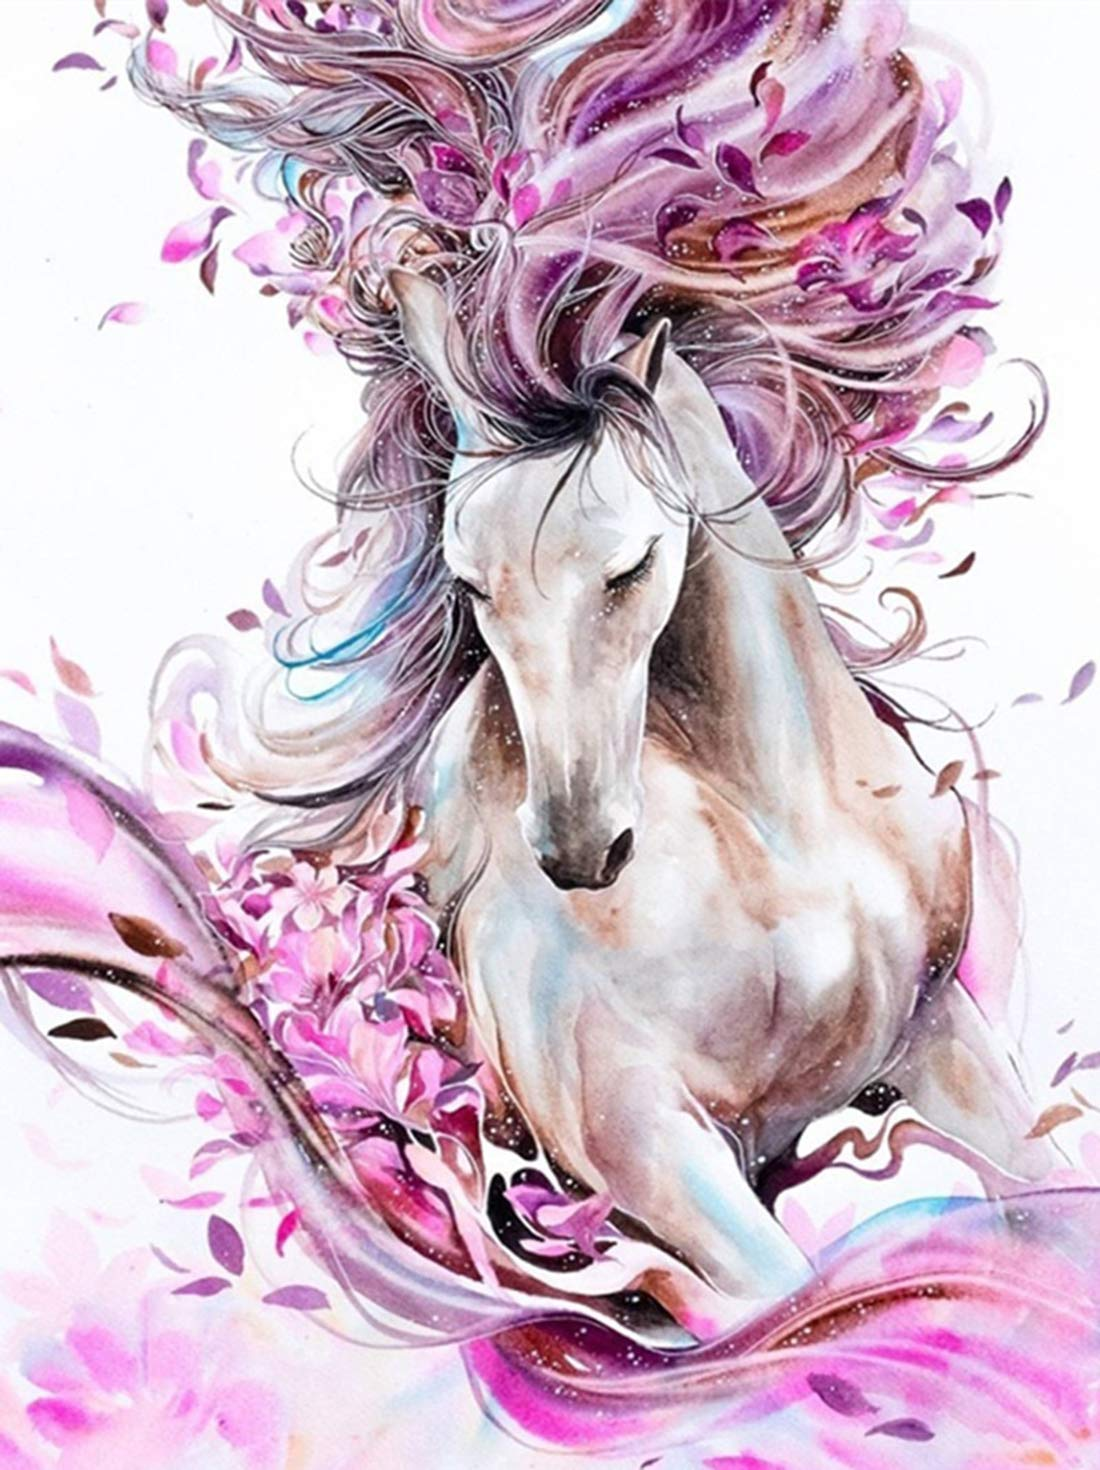 Kingshalor 5D Diamond Painting Horse Full Drill DIY Cross Stitch Resin Rhinestone Embroidery Dotz Kits Diamond Art Craft for Adults Home Wall Decor 12x16 inches